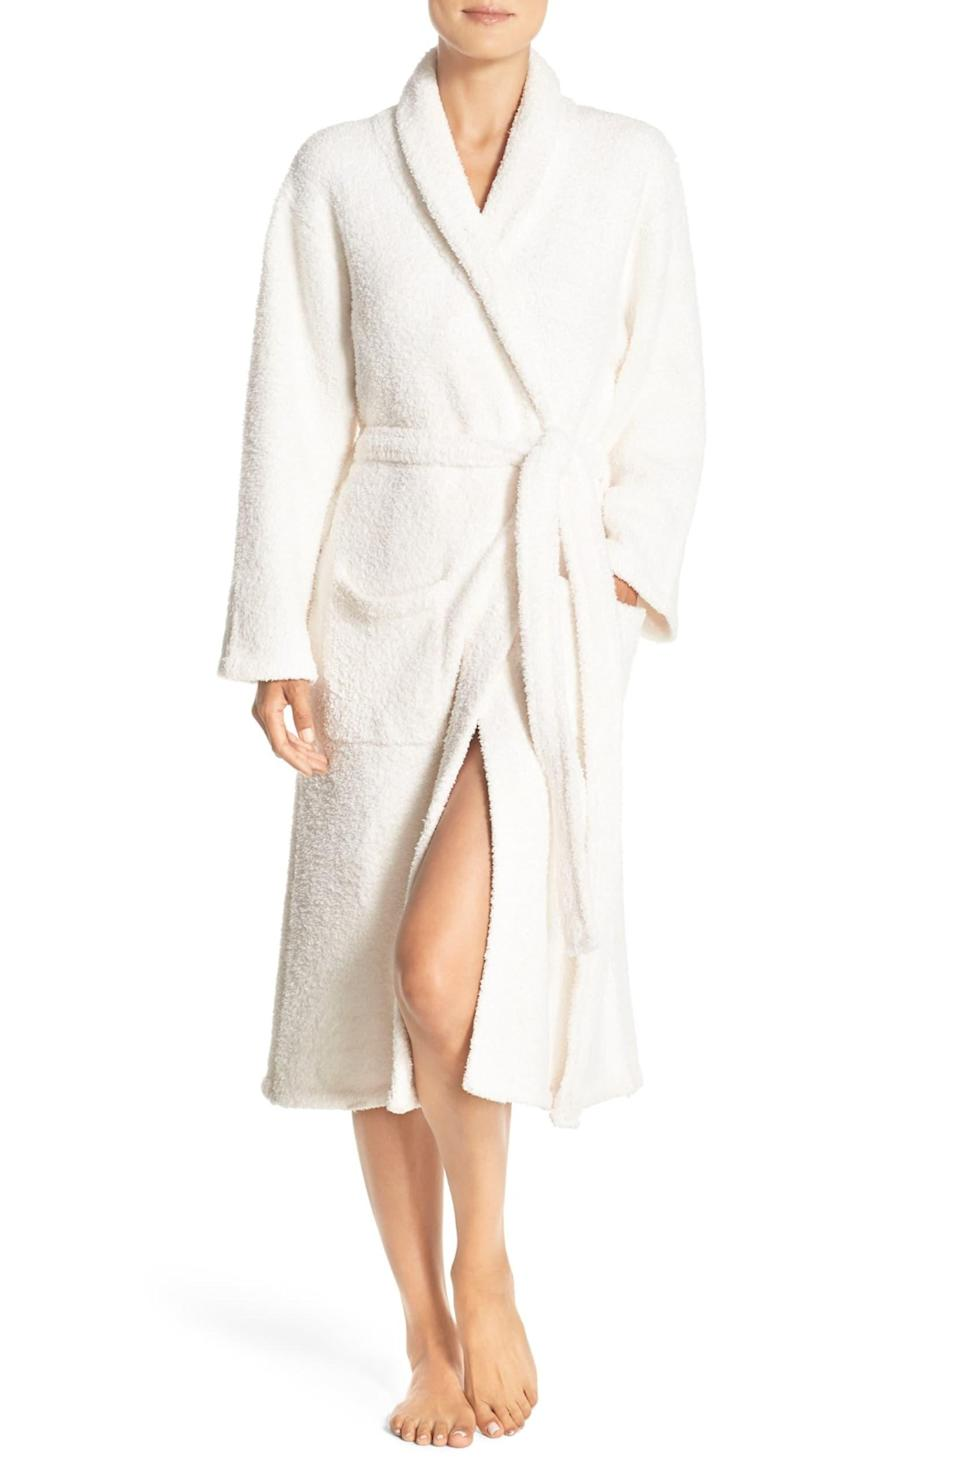 "<h3><a href=""https://shop.nordstrom.com/s/barefoot-dreams-cozychic-robe-nordstrom-online-exclusive/2833517"" rel=""nofollow noopener"" target=""_blank"" data-ylk=""slk:Barefoot Dreams CozyChic Robe"" class=""link rapid-noclick-resp"">Barefoot Dreams CozyChic Robe</a></h3> <br>If the brand name doesn't say it all — this machine-washable robe is crafted for lounging longevity from a super soft and cushy microfiber that won't shrink or pill.<br><br>One reviewer calls it the, ""Most comfortable robe ever,"" declaring: ""I'm so glad I bought this robe. It's incredibly soft and cozy. It is thick fabric without being heavy or hot. Totally a year-round robe.""<br><br><strong>BAREFOOT DREAMS®</strong> CozyChic Robe, $, available at <a href=""https://go.skimresources.com/?id=30283X879131&url=https%3A%2F%2Fshop.nordstrom.com%2Fs%2Fbarefoot-dreams-cozychic-robe-nordstrom-online-exclusive%2F2833517"" rel=""nofollow noopener"" target=""_blank"" data-ylk=""slk:Nordstrom"" class=""link rapid-noclick-resp"">Nordstrom</a><br><br><br>"